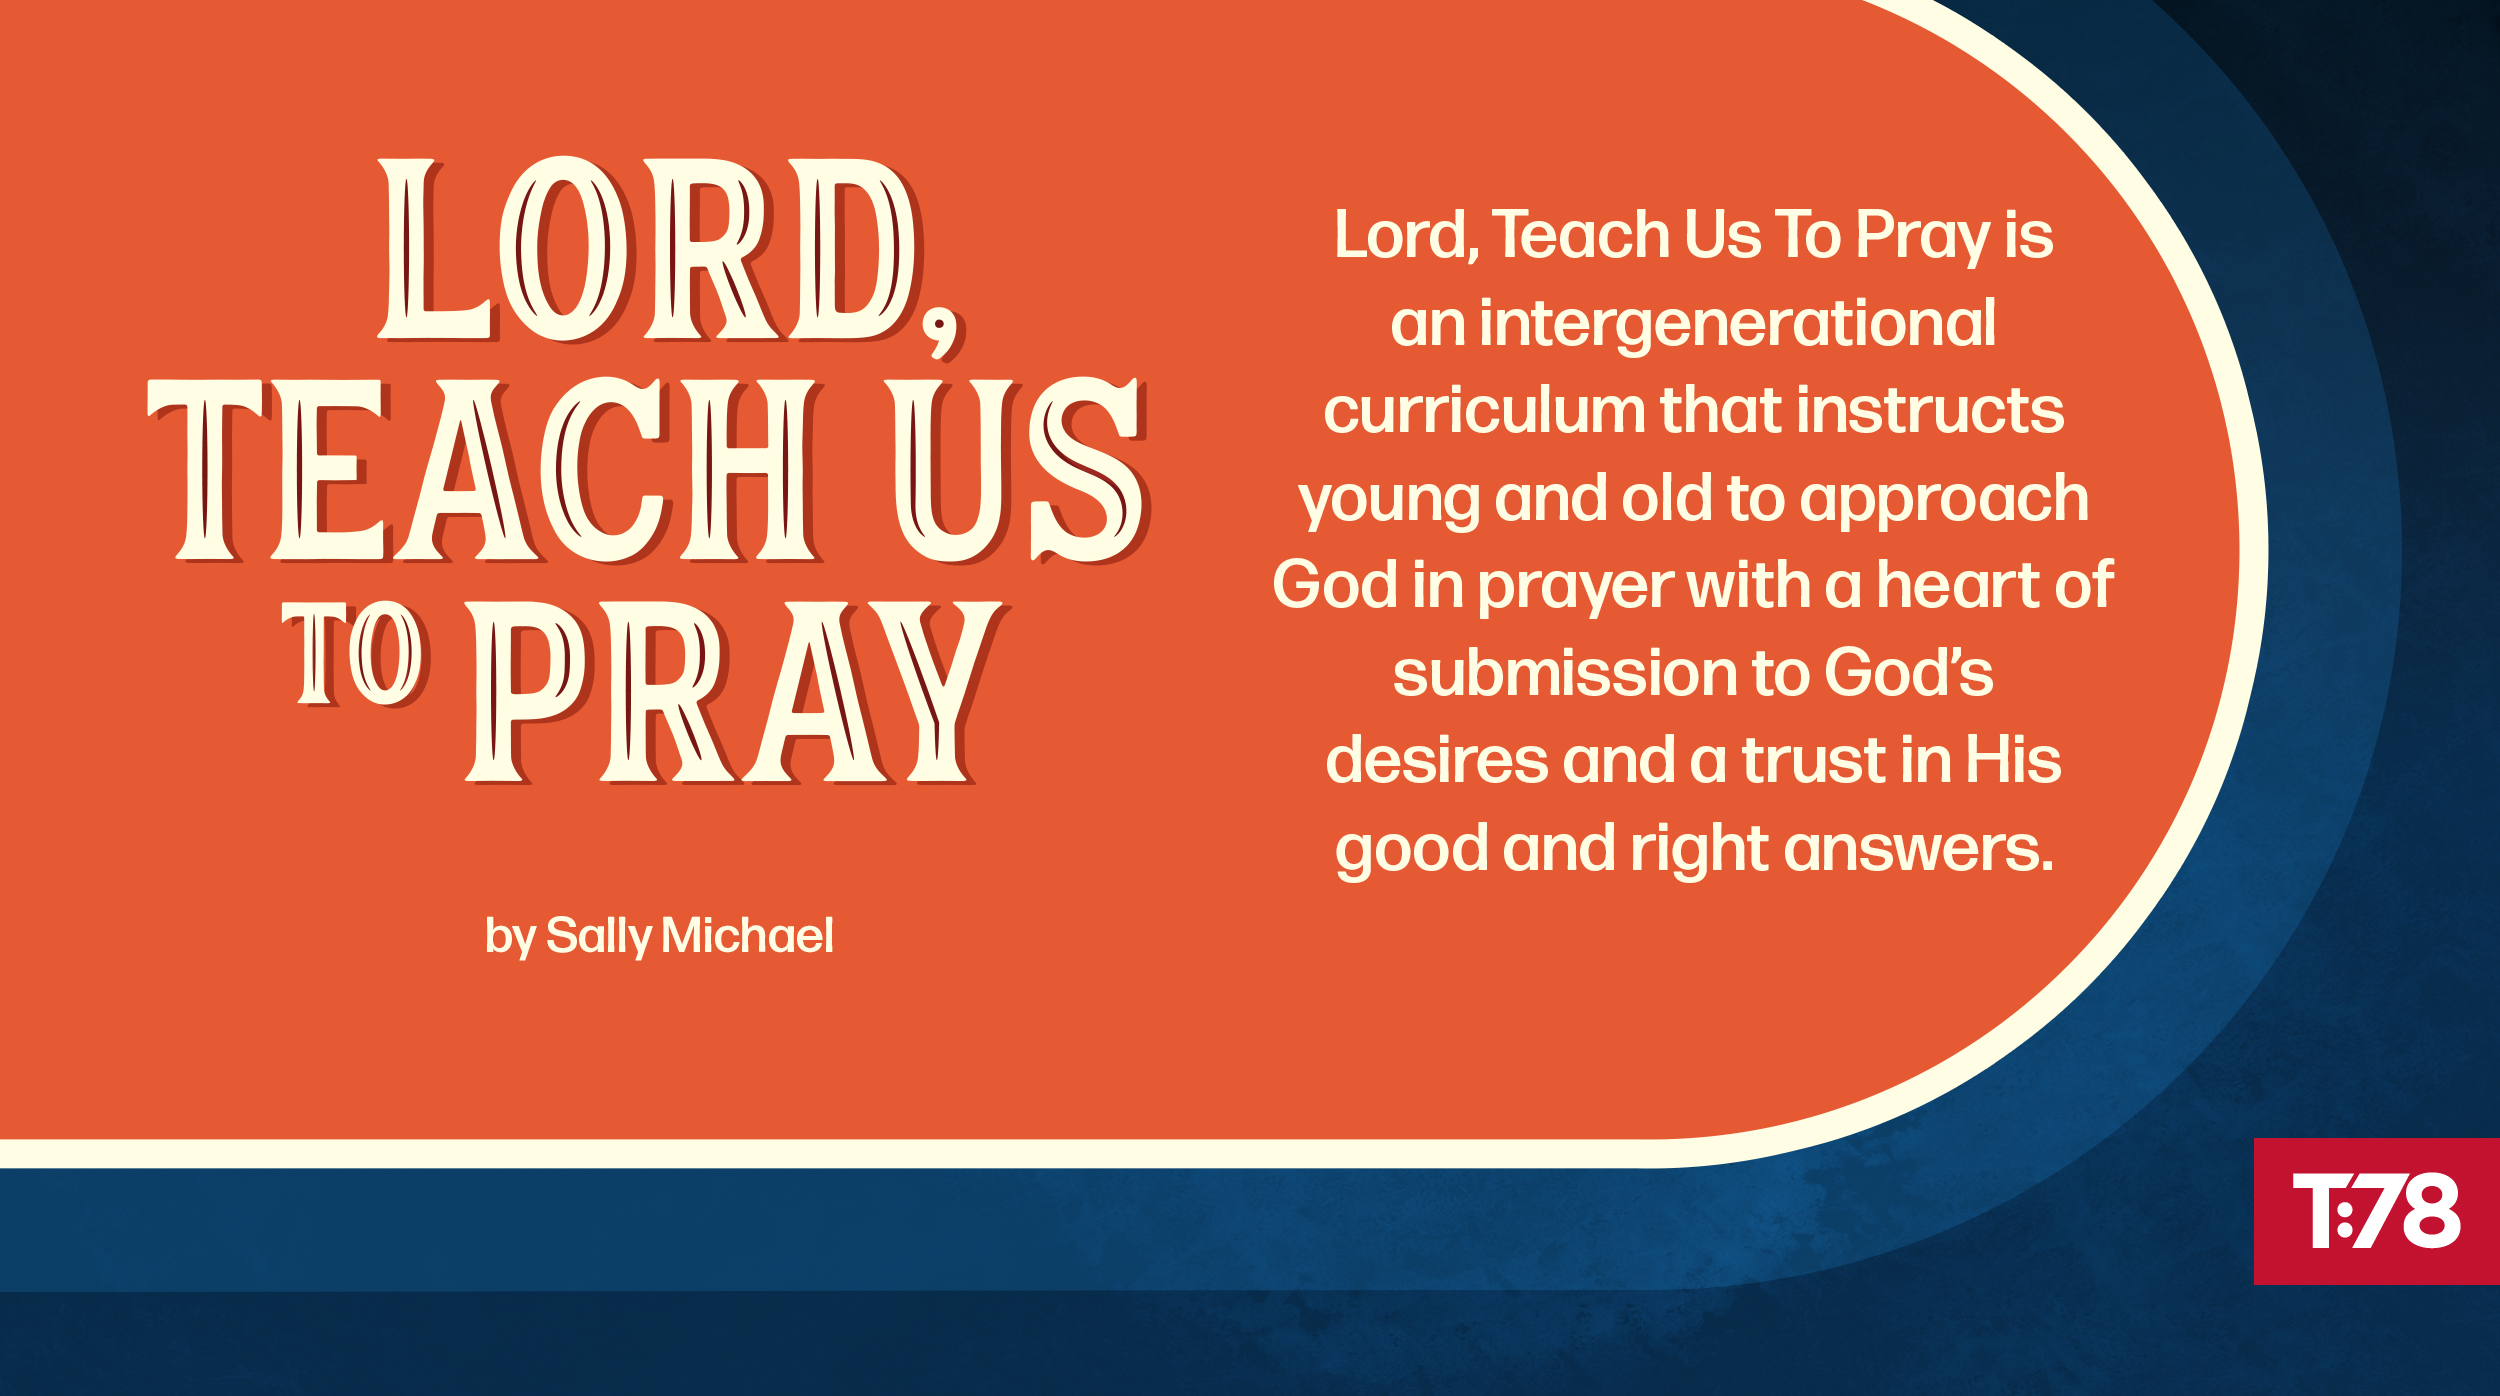 Revised Lord, Teach Us To Pray Curriculum Now Available